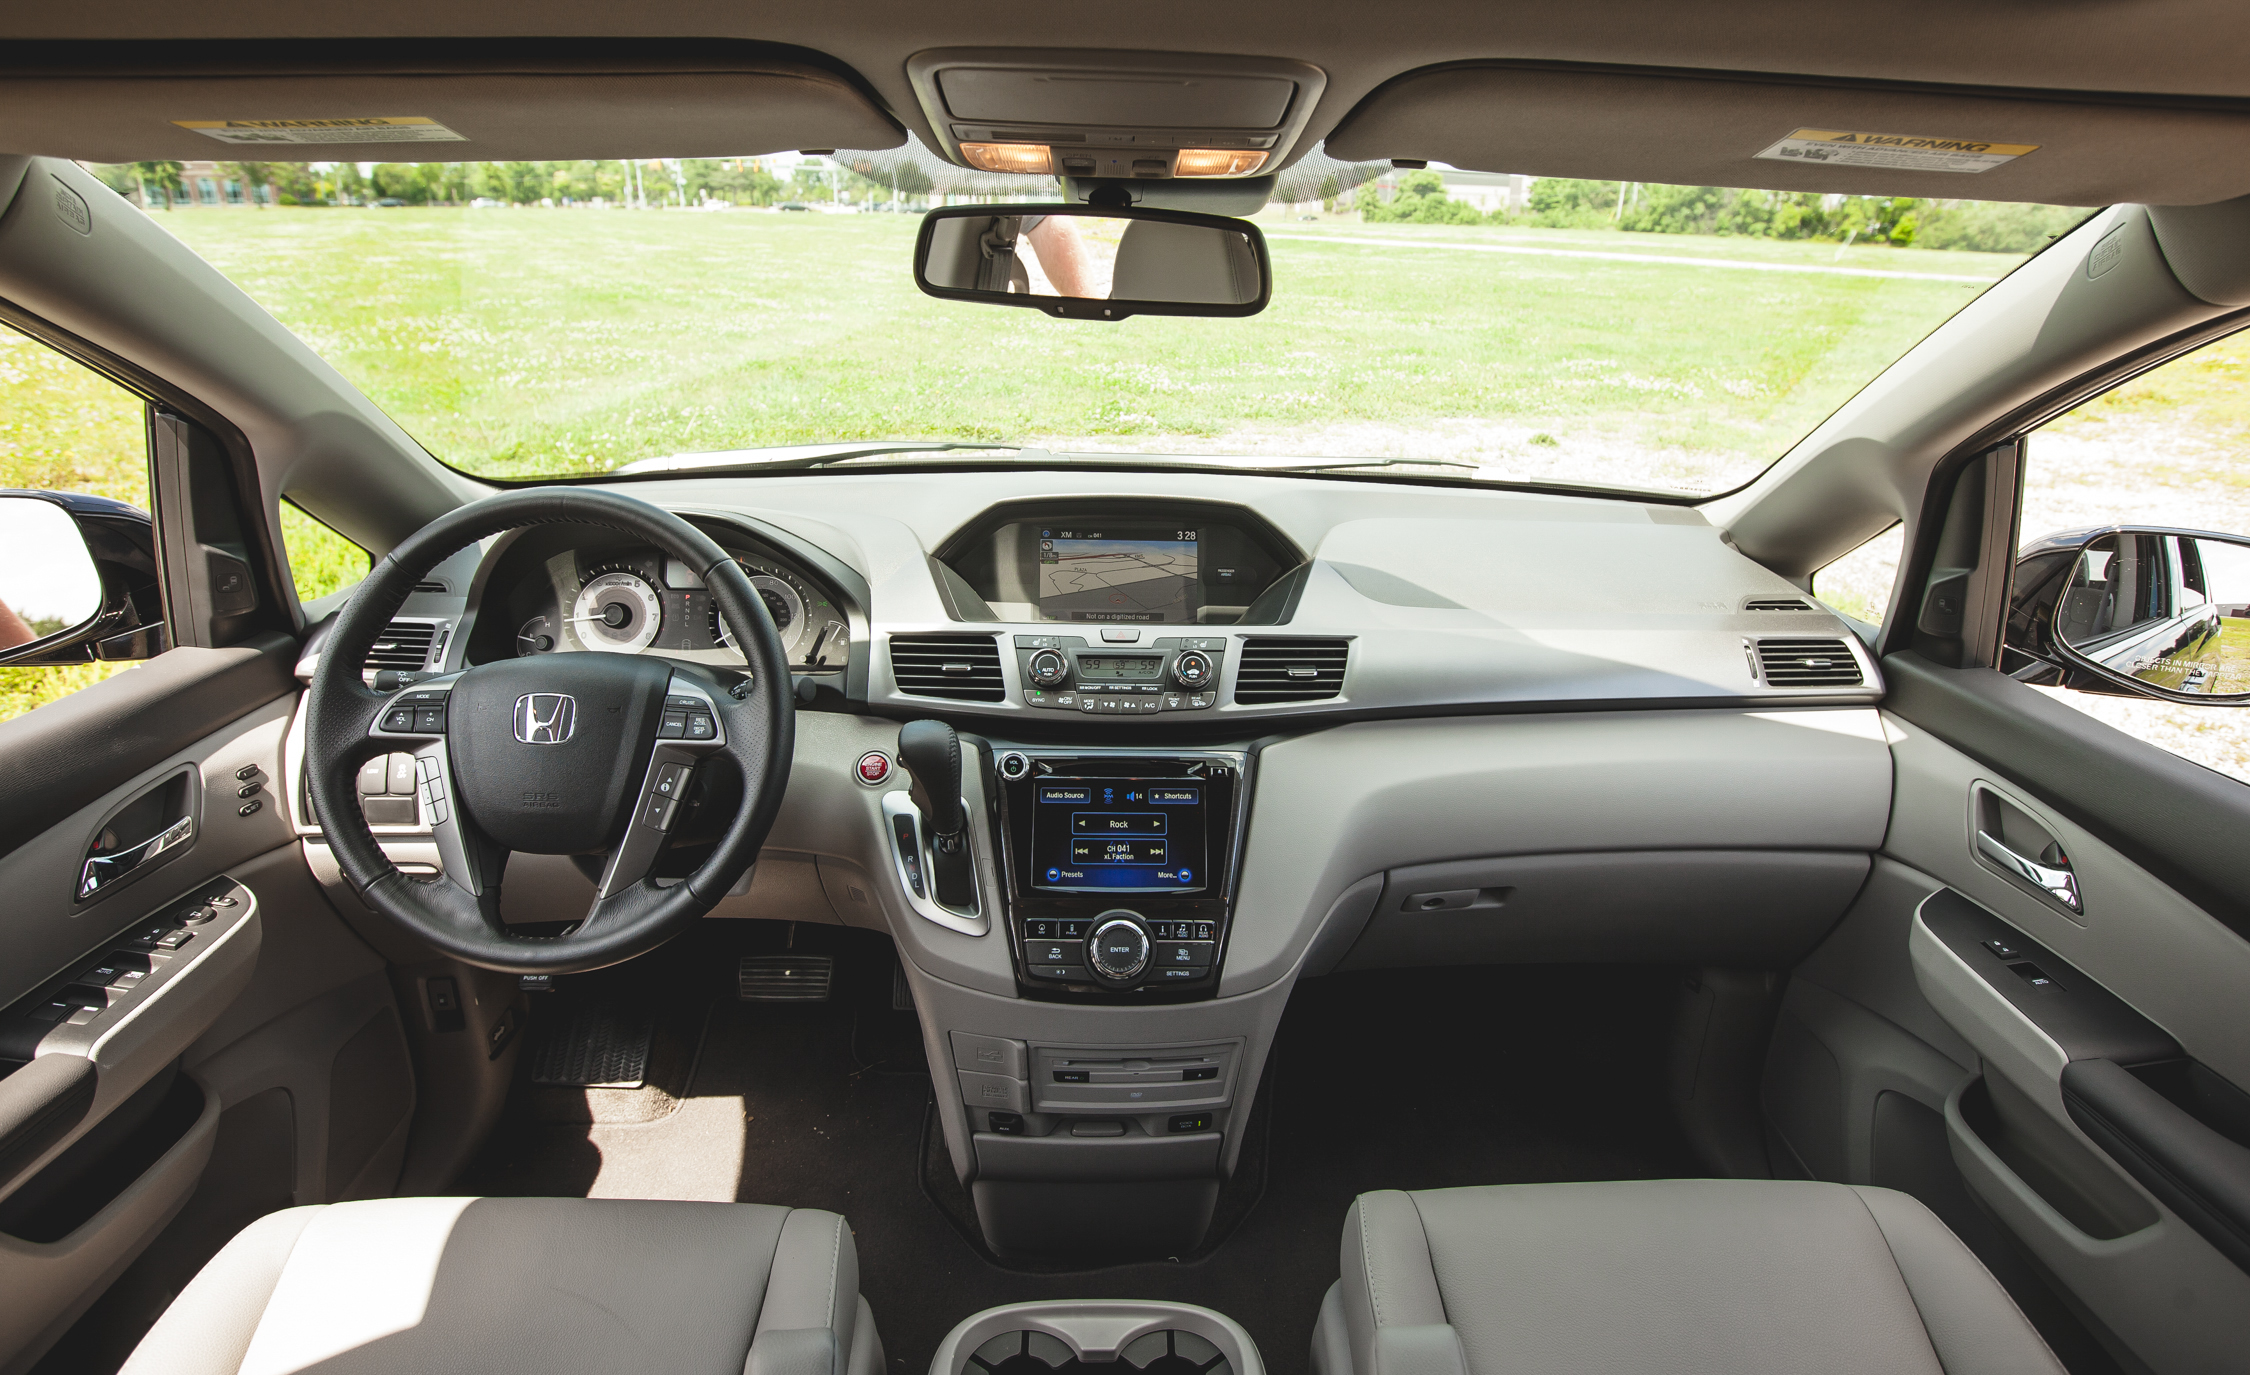 2014 Honda Odyssey Touring Elite Interior (View 12 of 19)